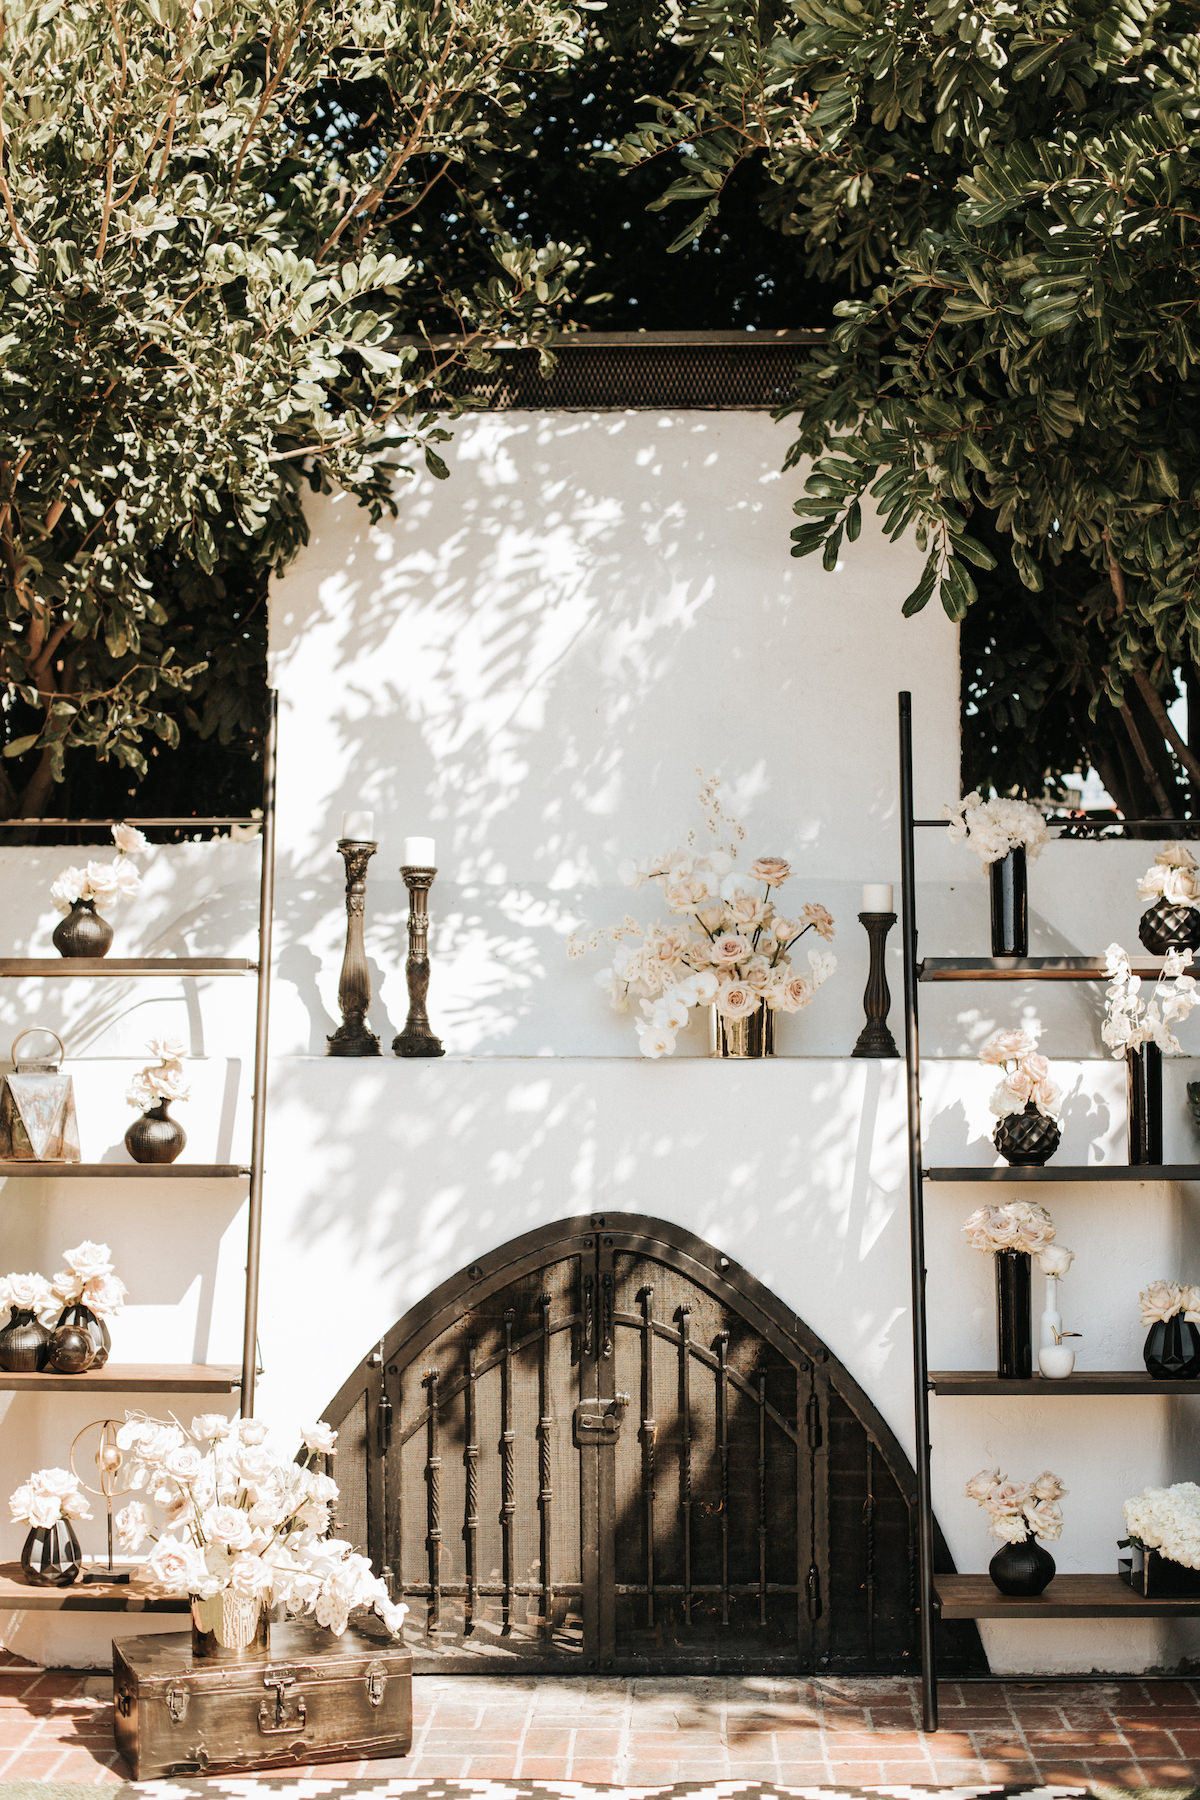 Black and white outdoor wedding ceremony elopement - Sydney Bliss Photography